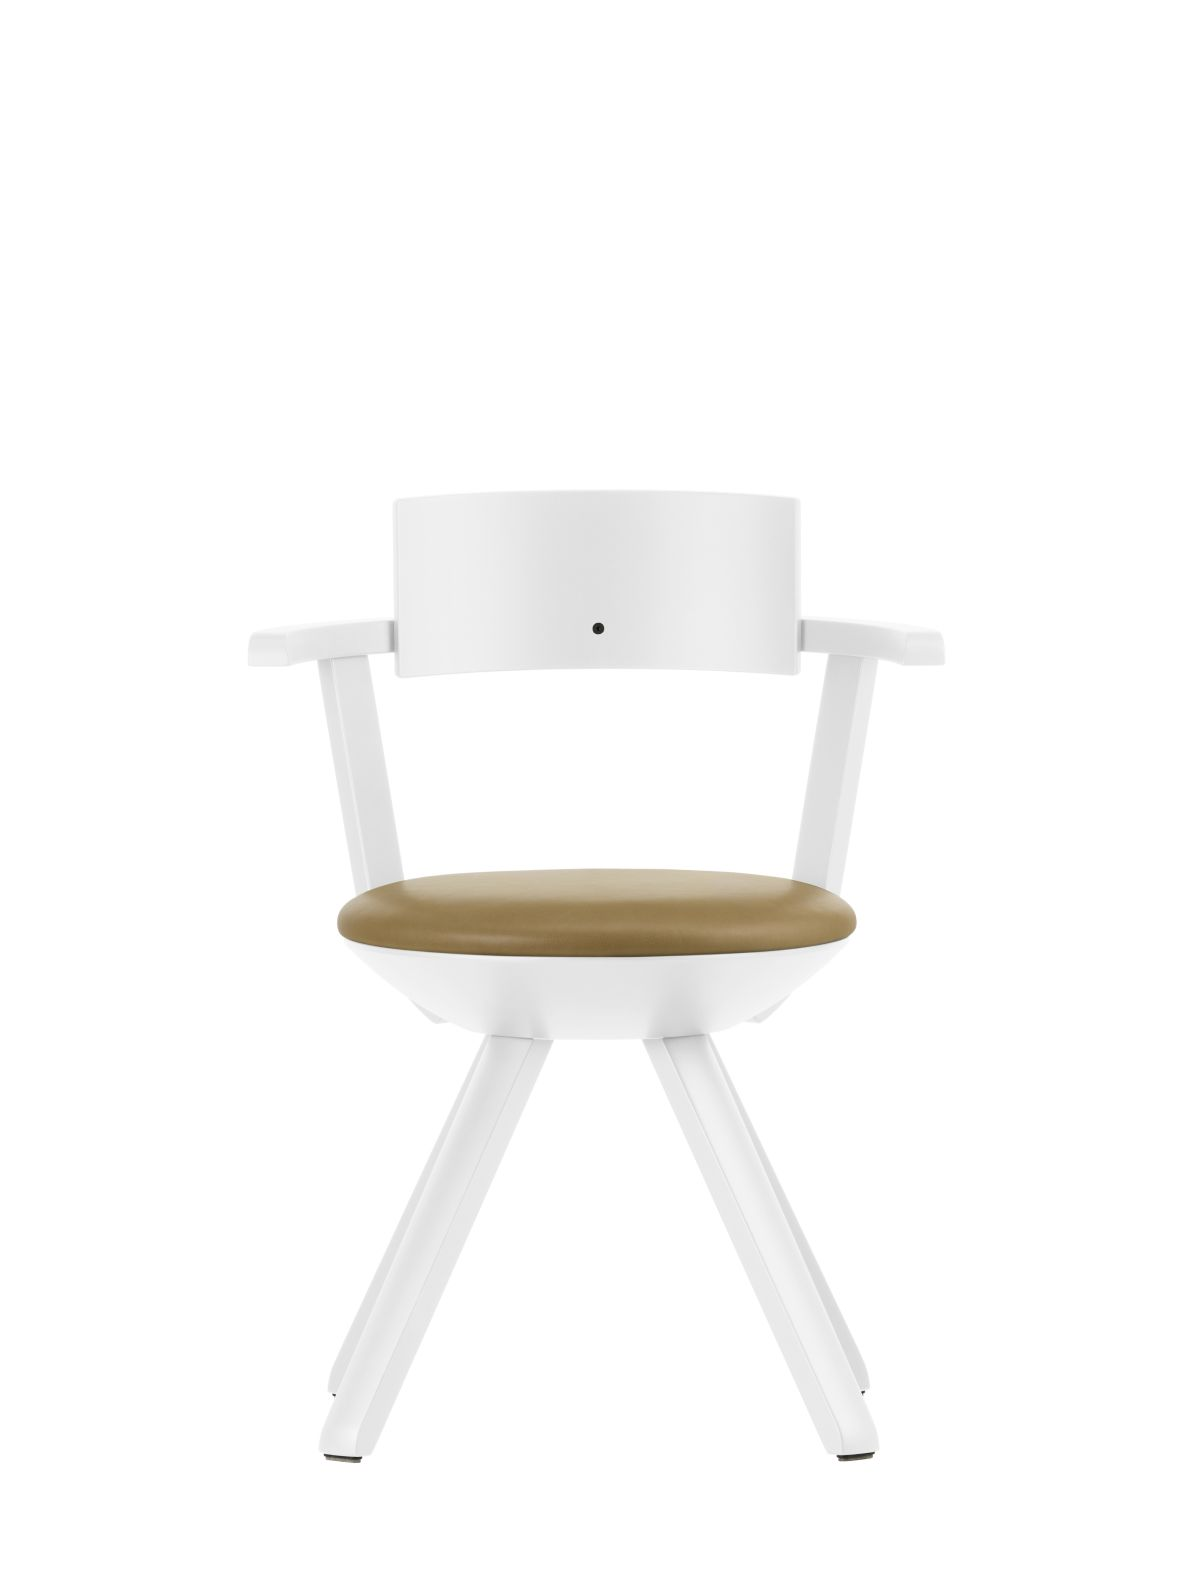 Rival Chair KG002 white lacquer caramel leather upholstery